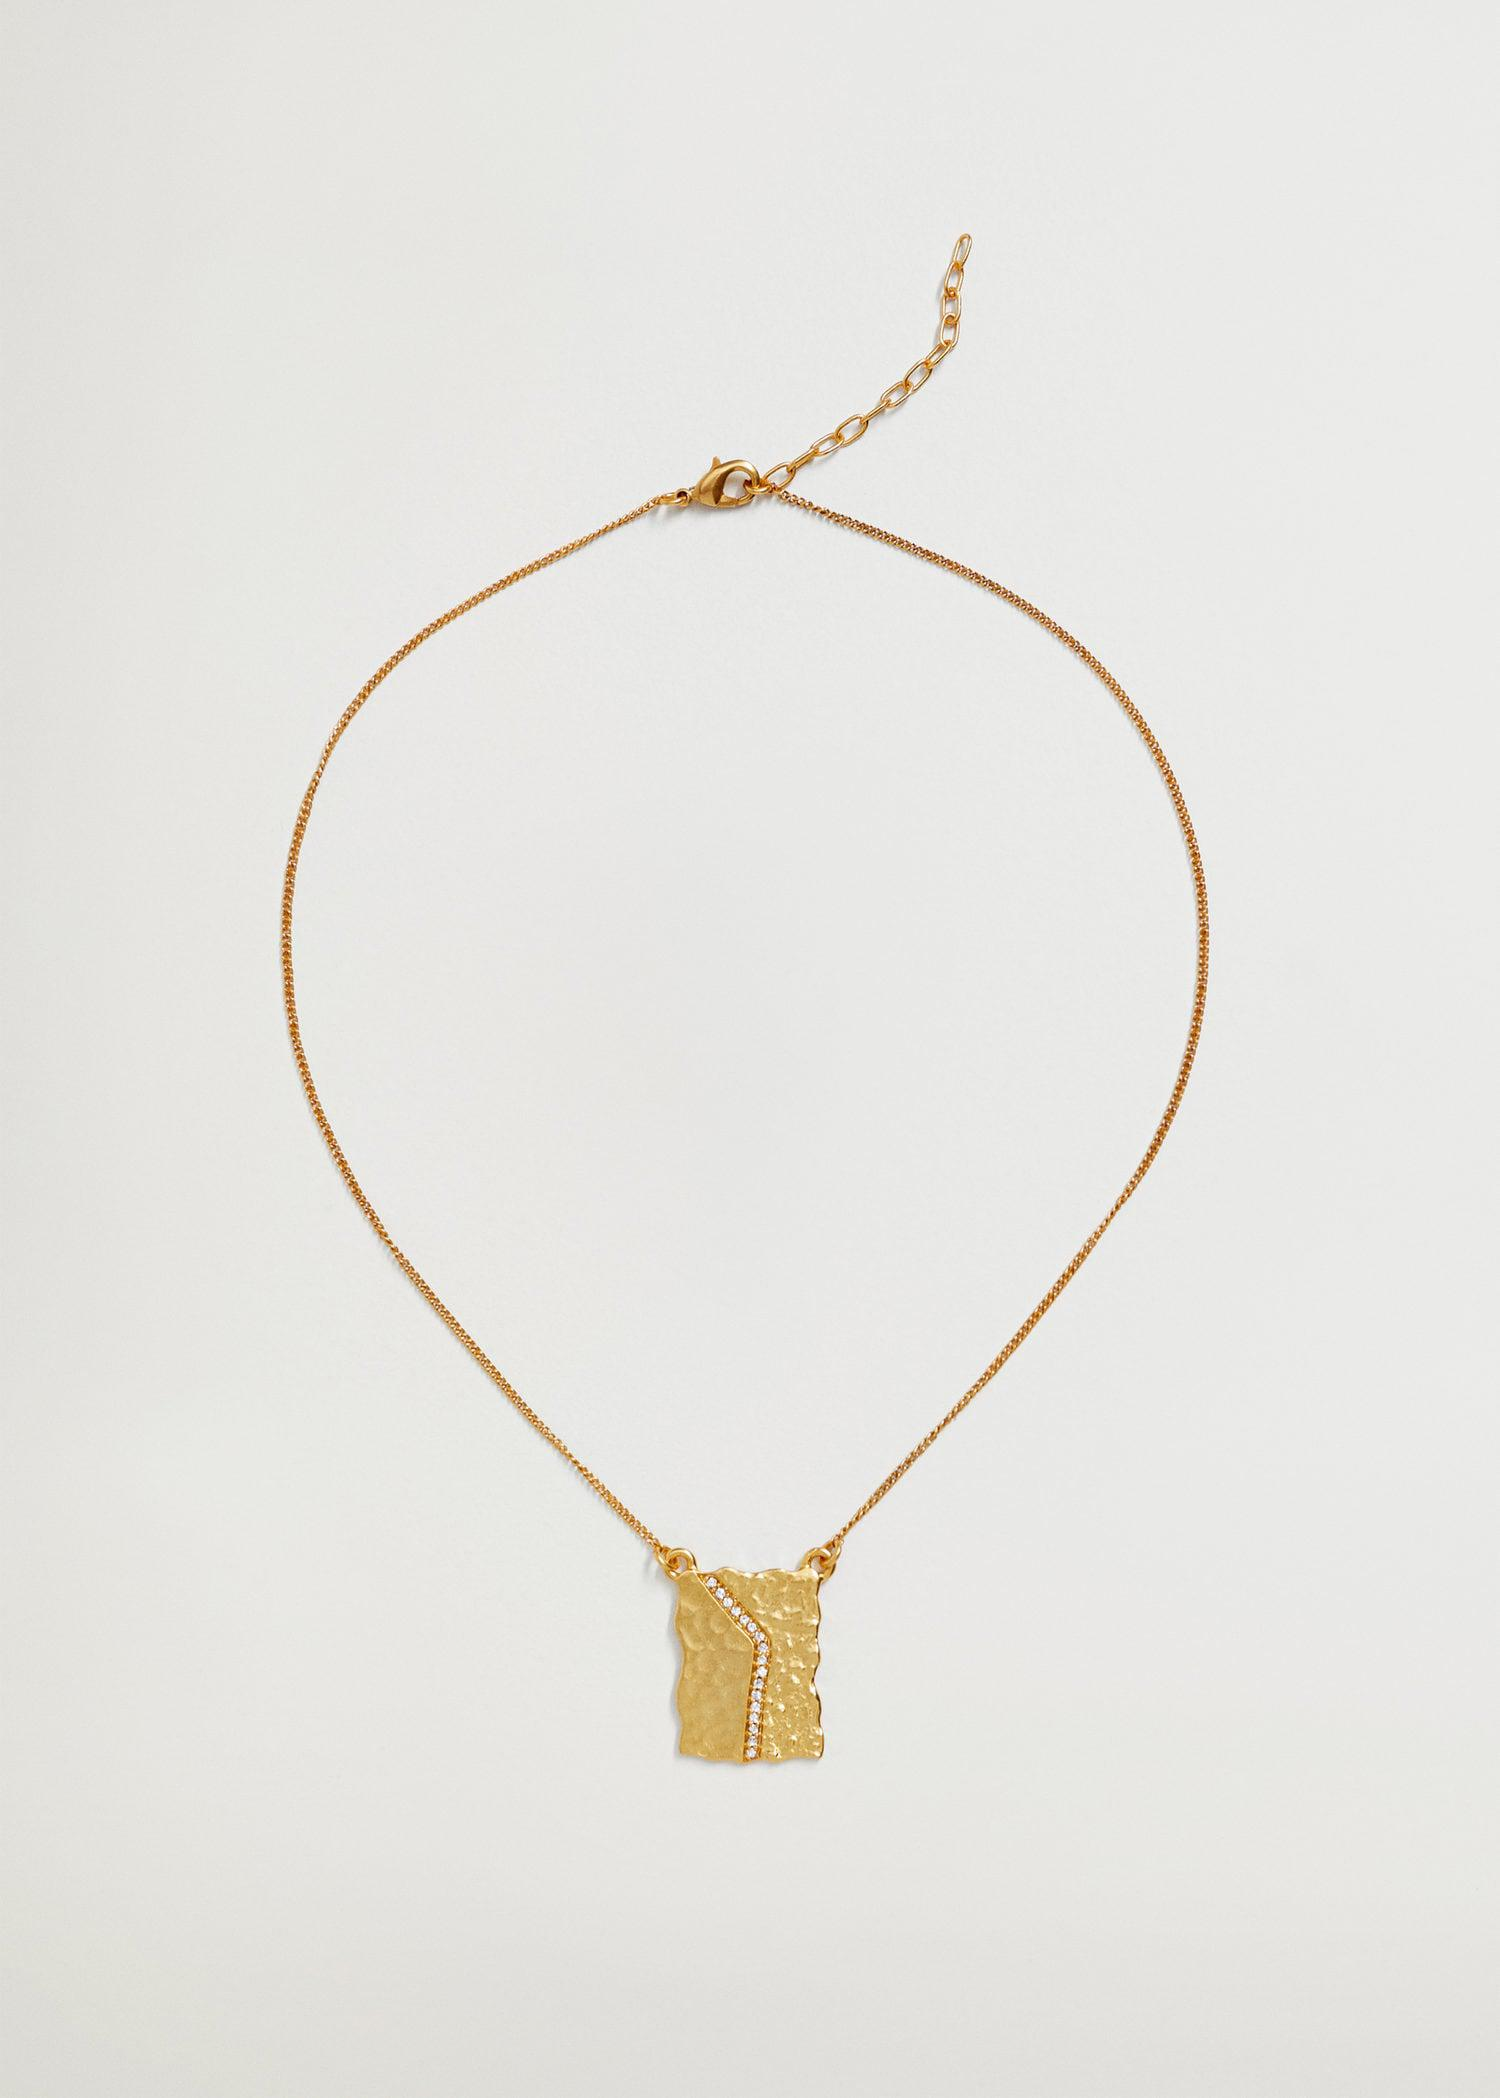 Embossed necklace